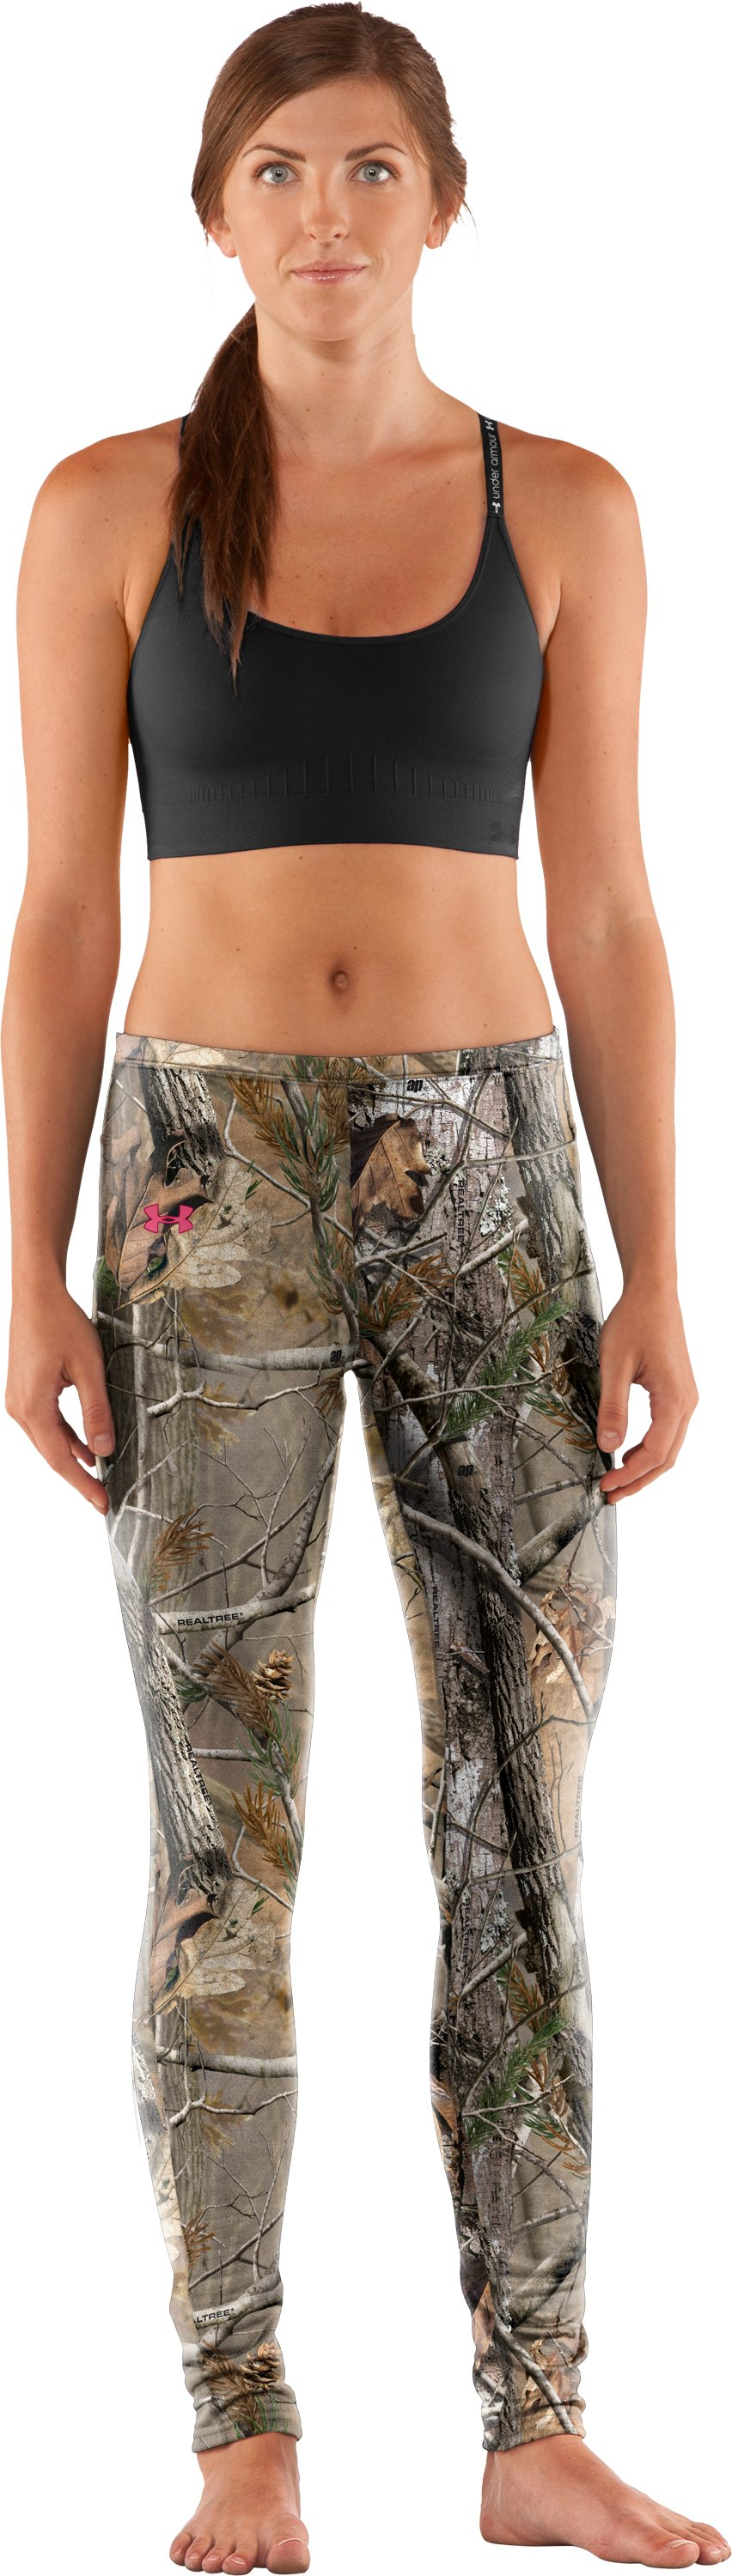 Women's EVO Scent Control Leggings, Realtree AP, zoomed image